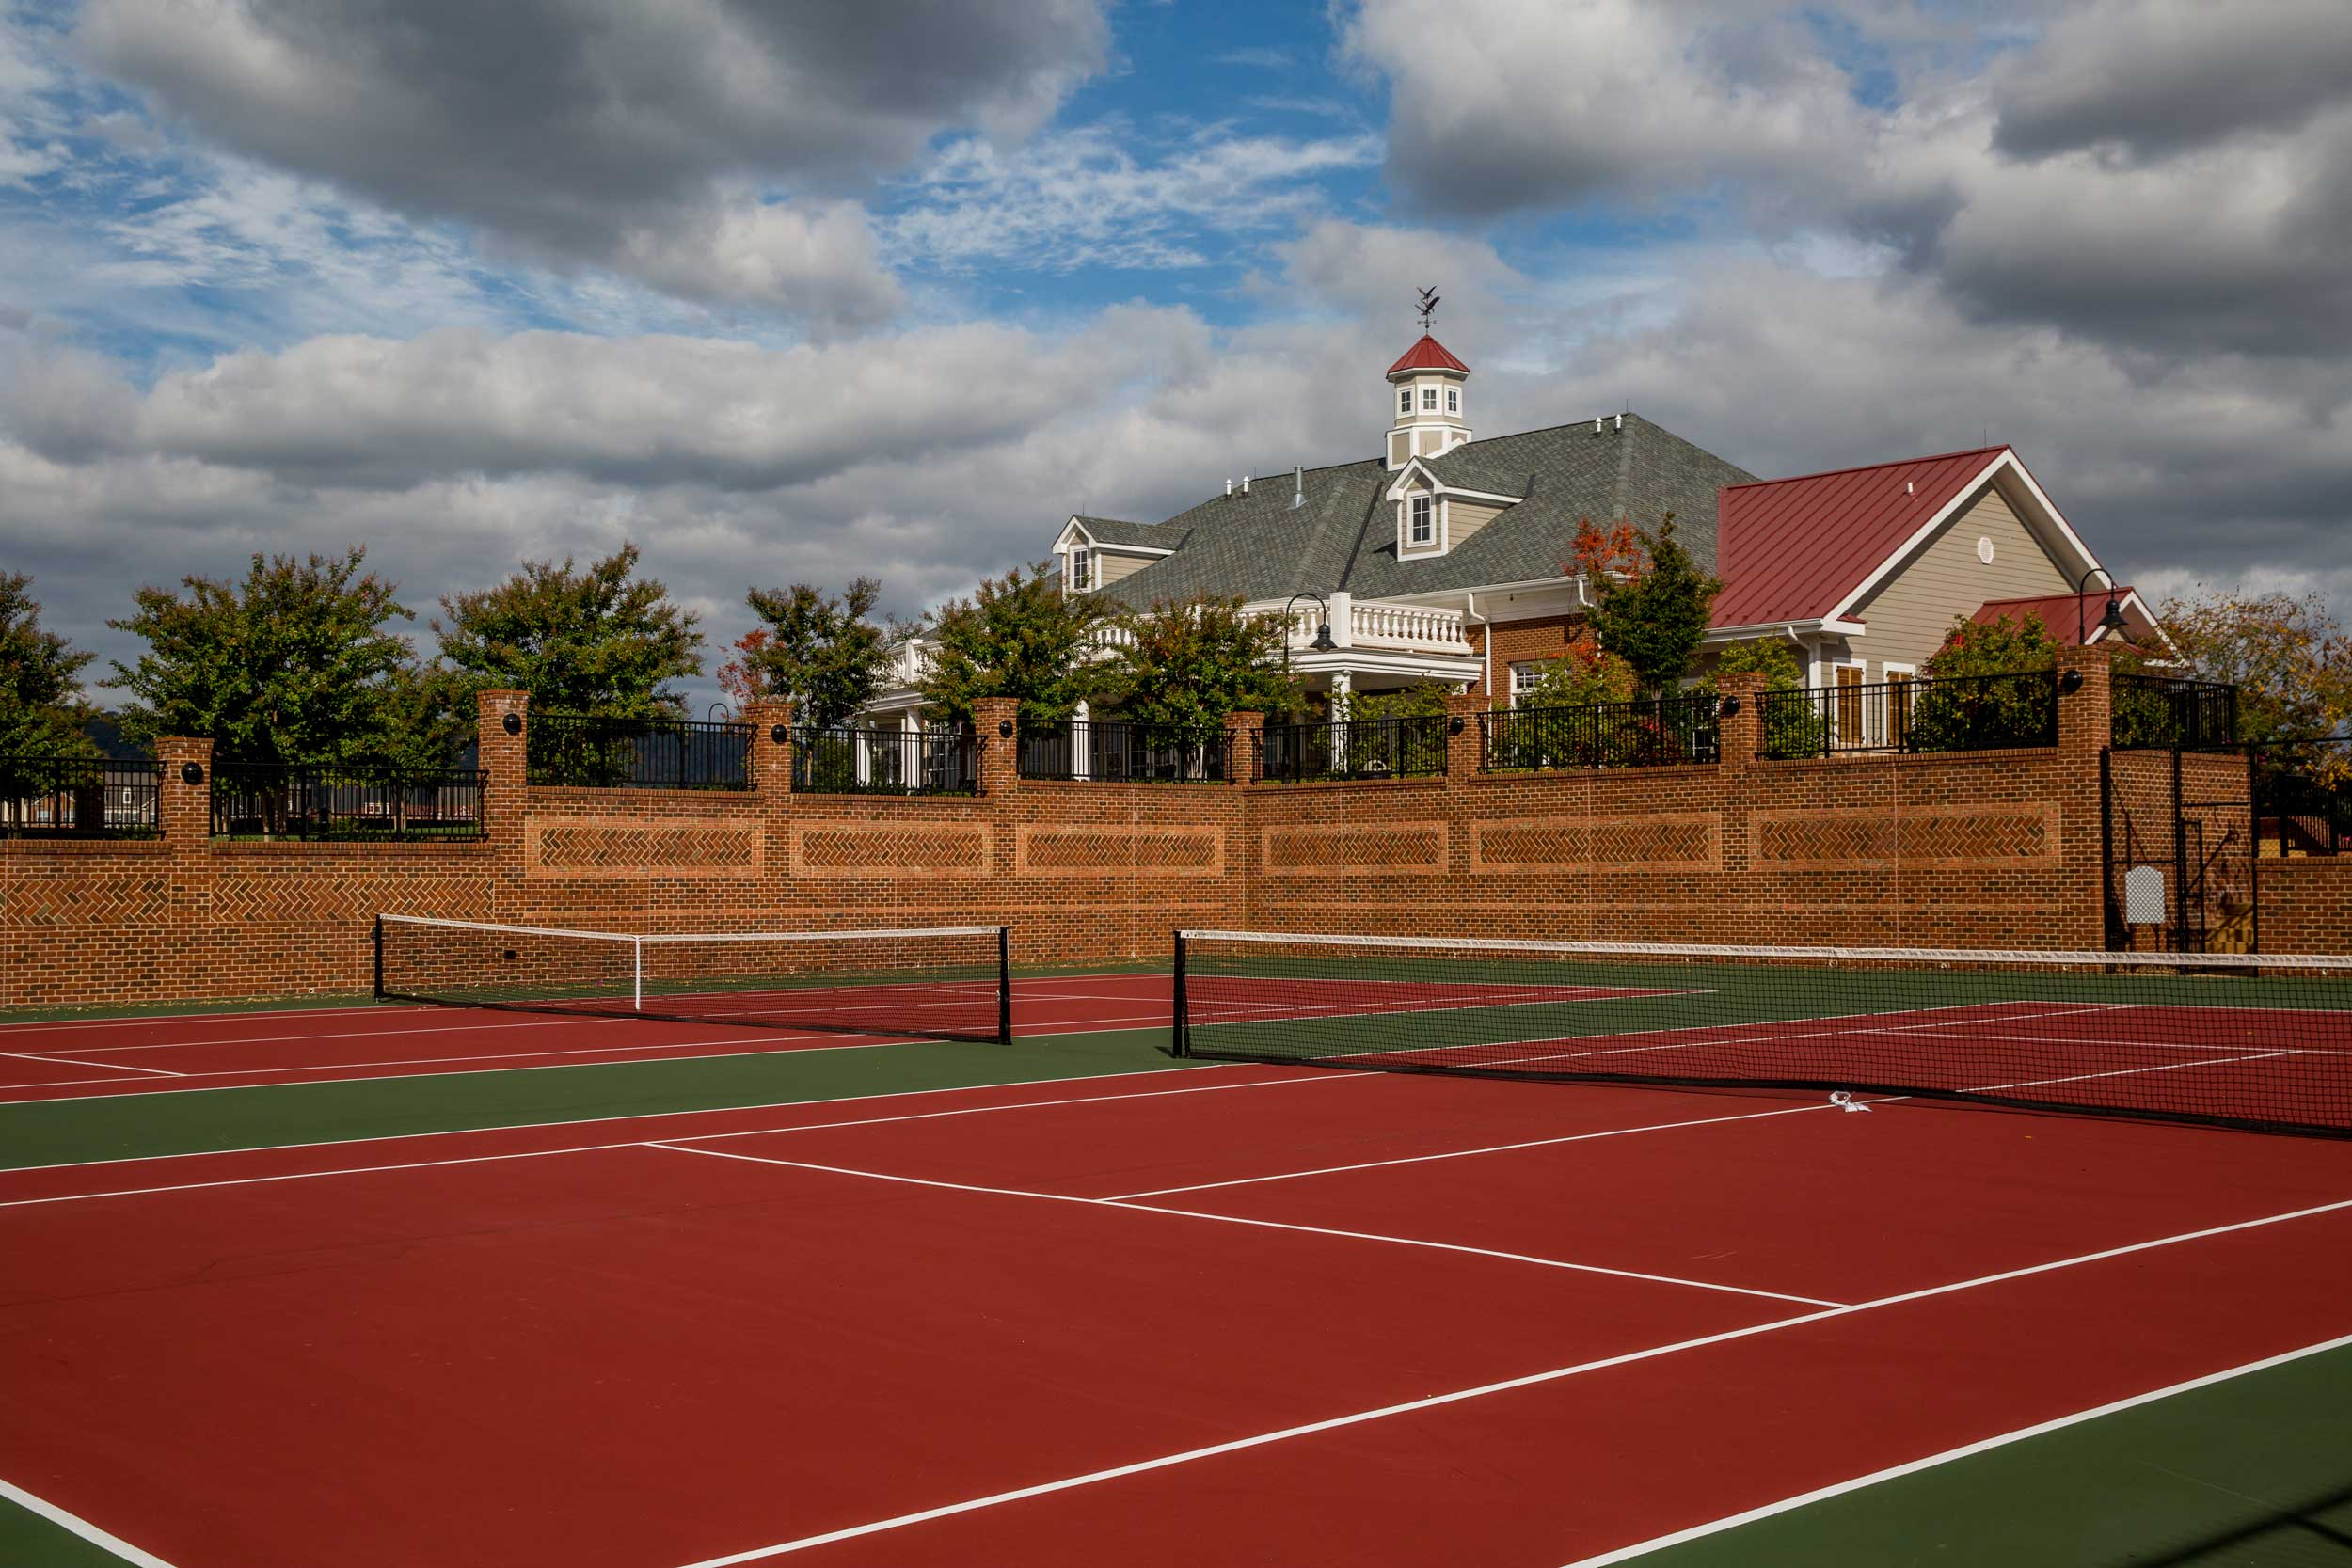 Brunswick Crossing Tennis Courts are part of the Frederick New Home Master Planned Community